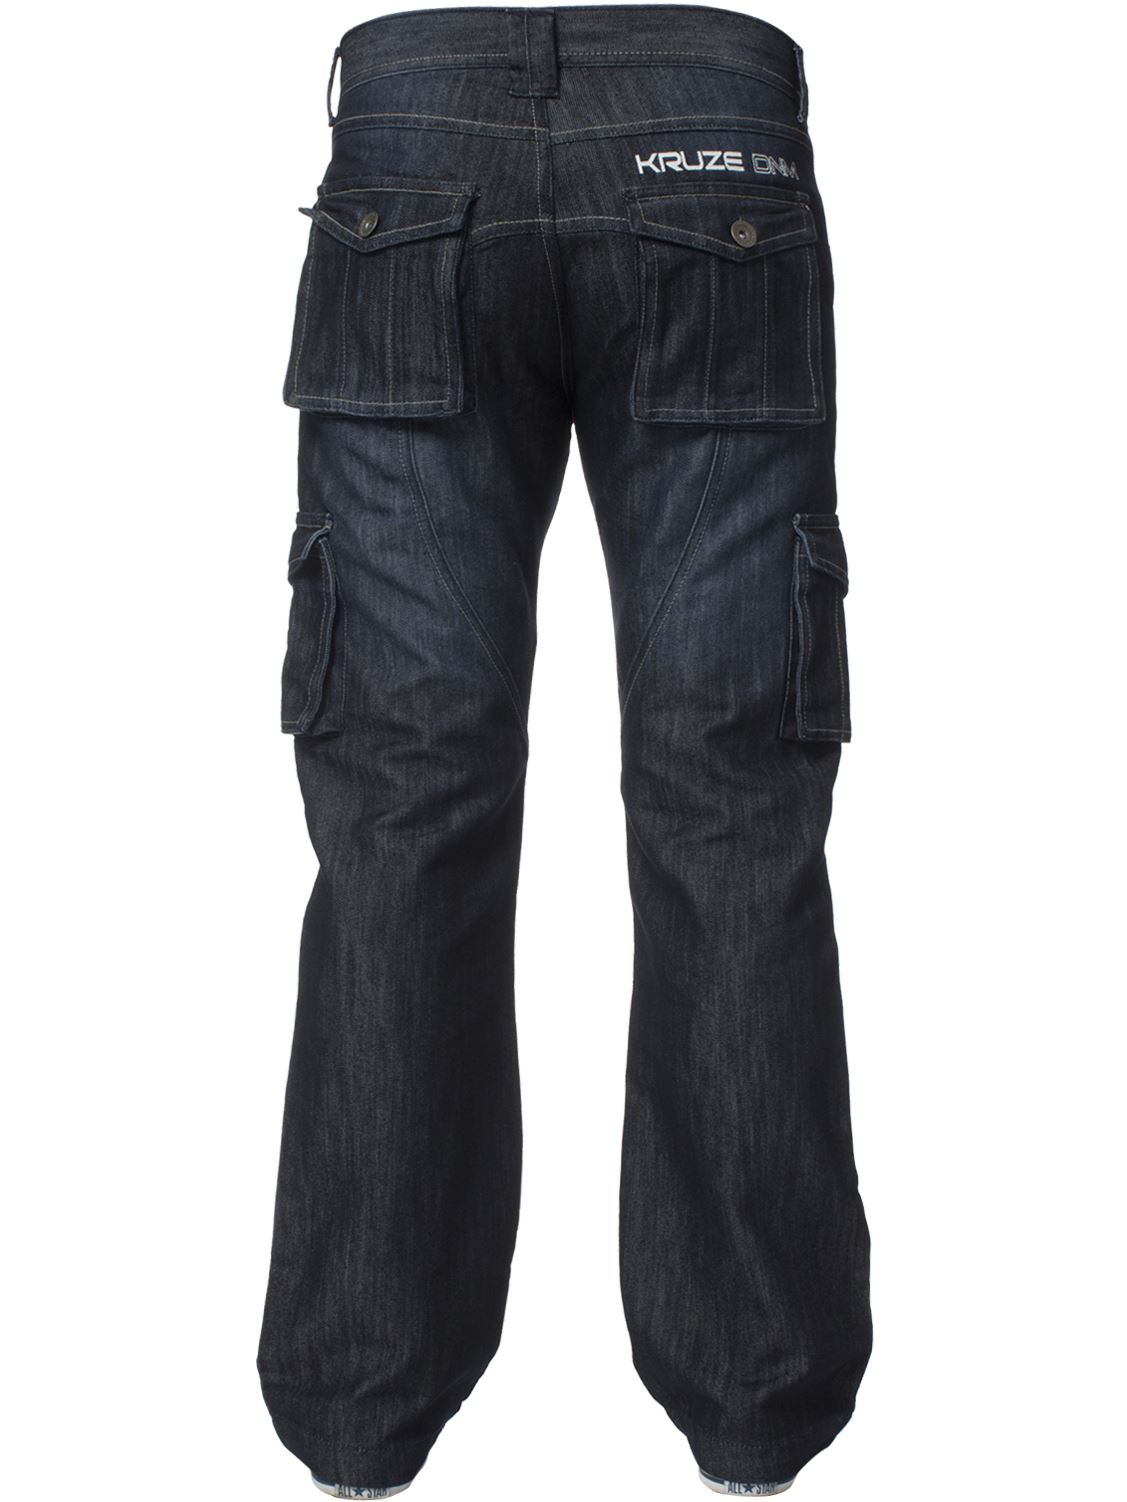 Mens-Cargo-Combat-Trousers-Jeans-Heavy-Duty-Work-Casual-Pants-Big-Tall-All-Sizes thumbnail 10